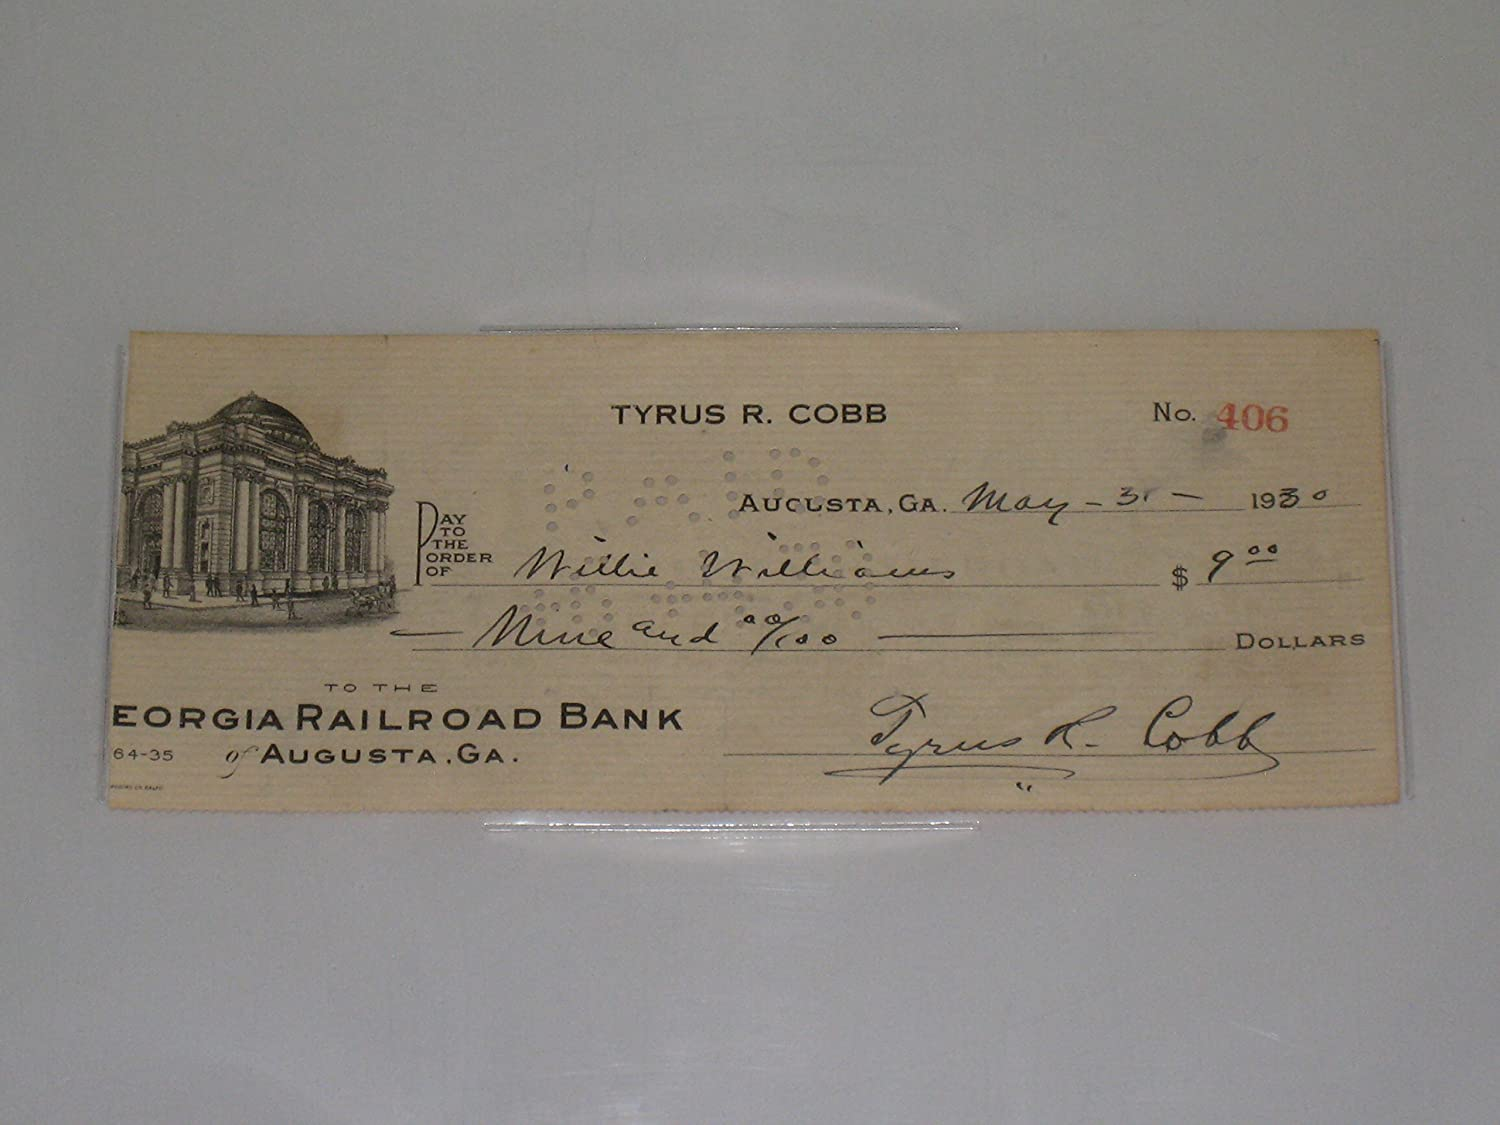 Ty Cobb Autographed 1930 Personal Check - Slabbed with JSA Letter of Authenticity Miller' s Sportscards